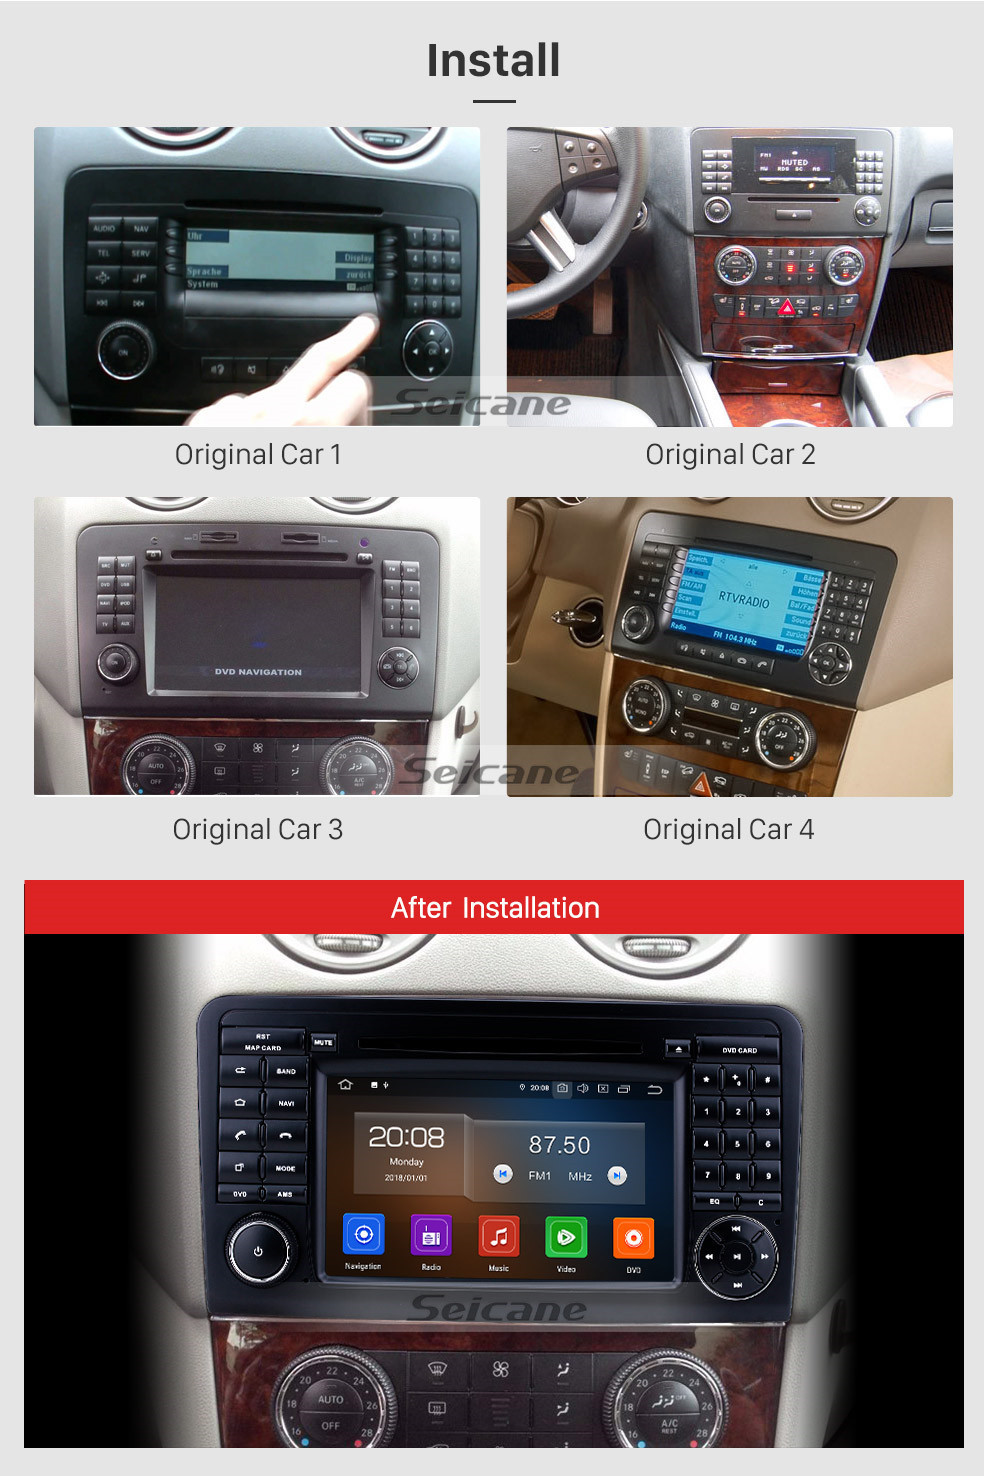 Seicane 7 inch Android 10.0 GPS Navigation Radio for 2005-2012 Mercedes Benz GL CLASS X164 GL320 with HD Touchscreen Carplay Bluetooth support TPMS OBD2